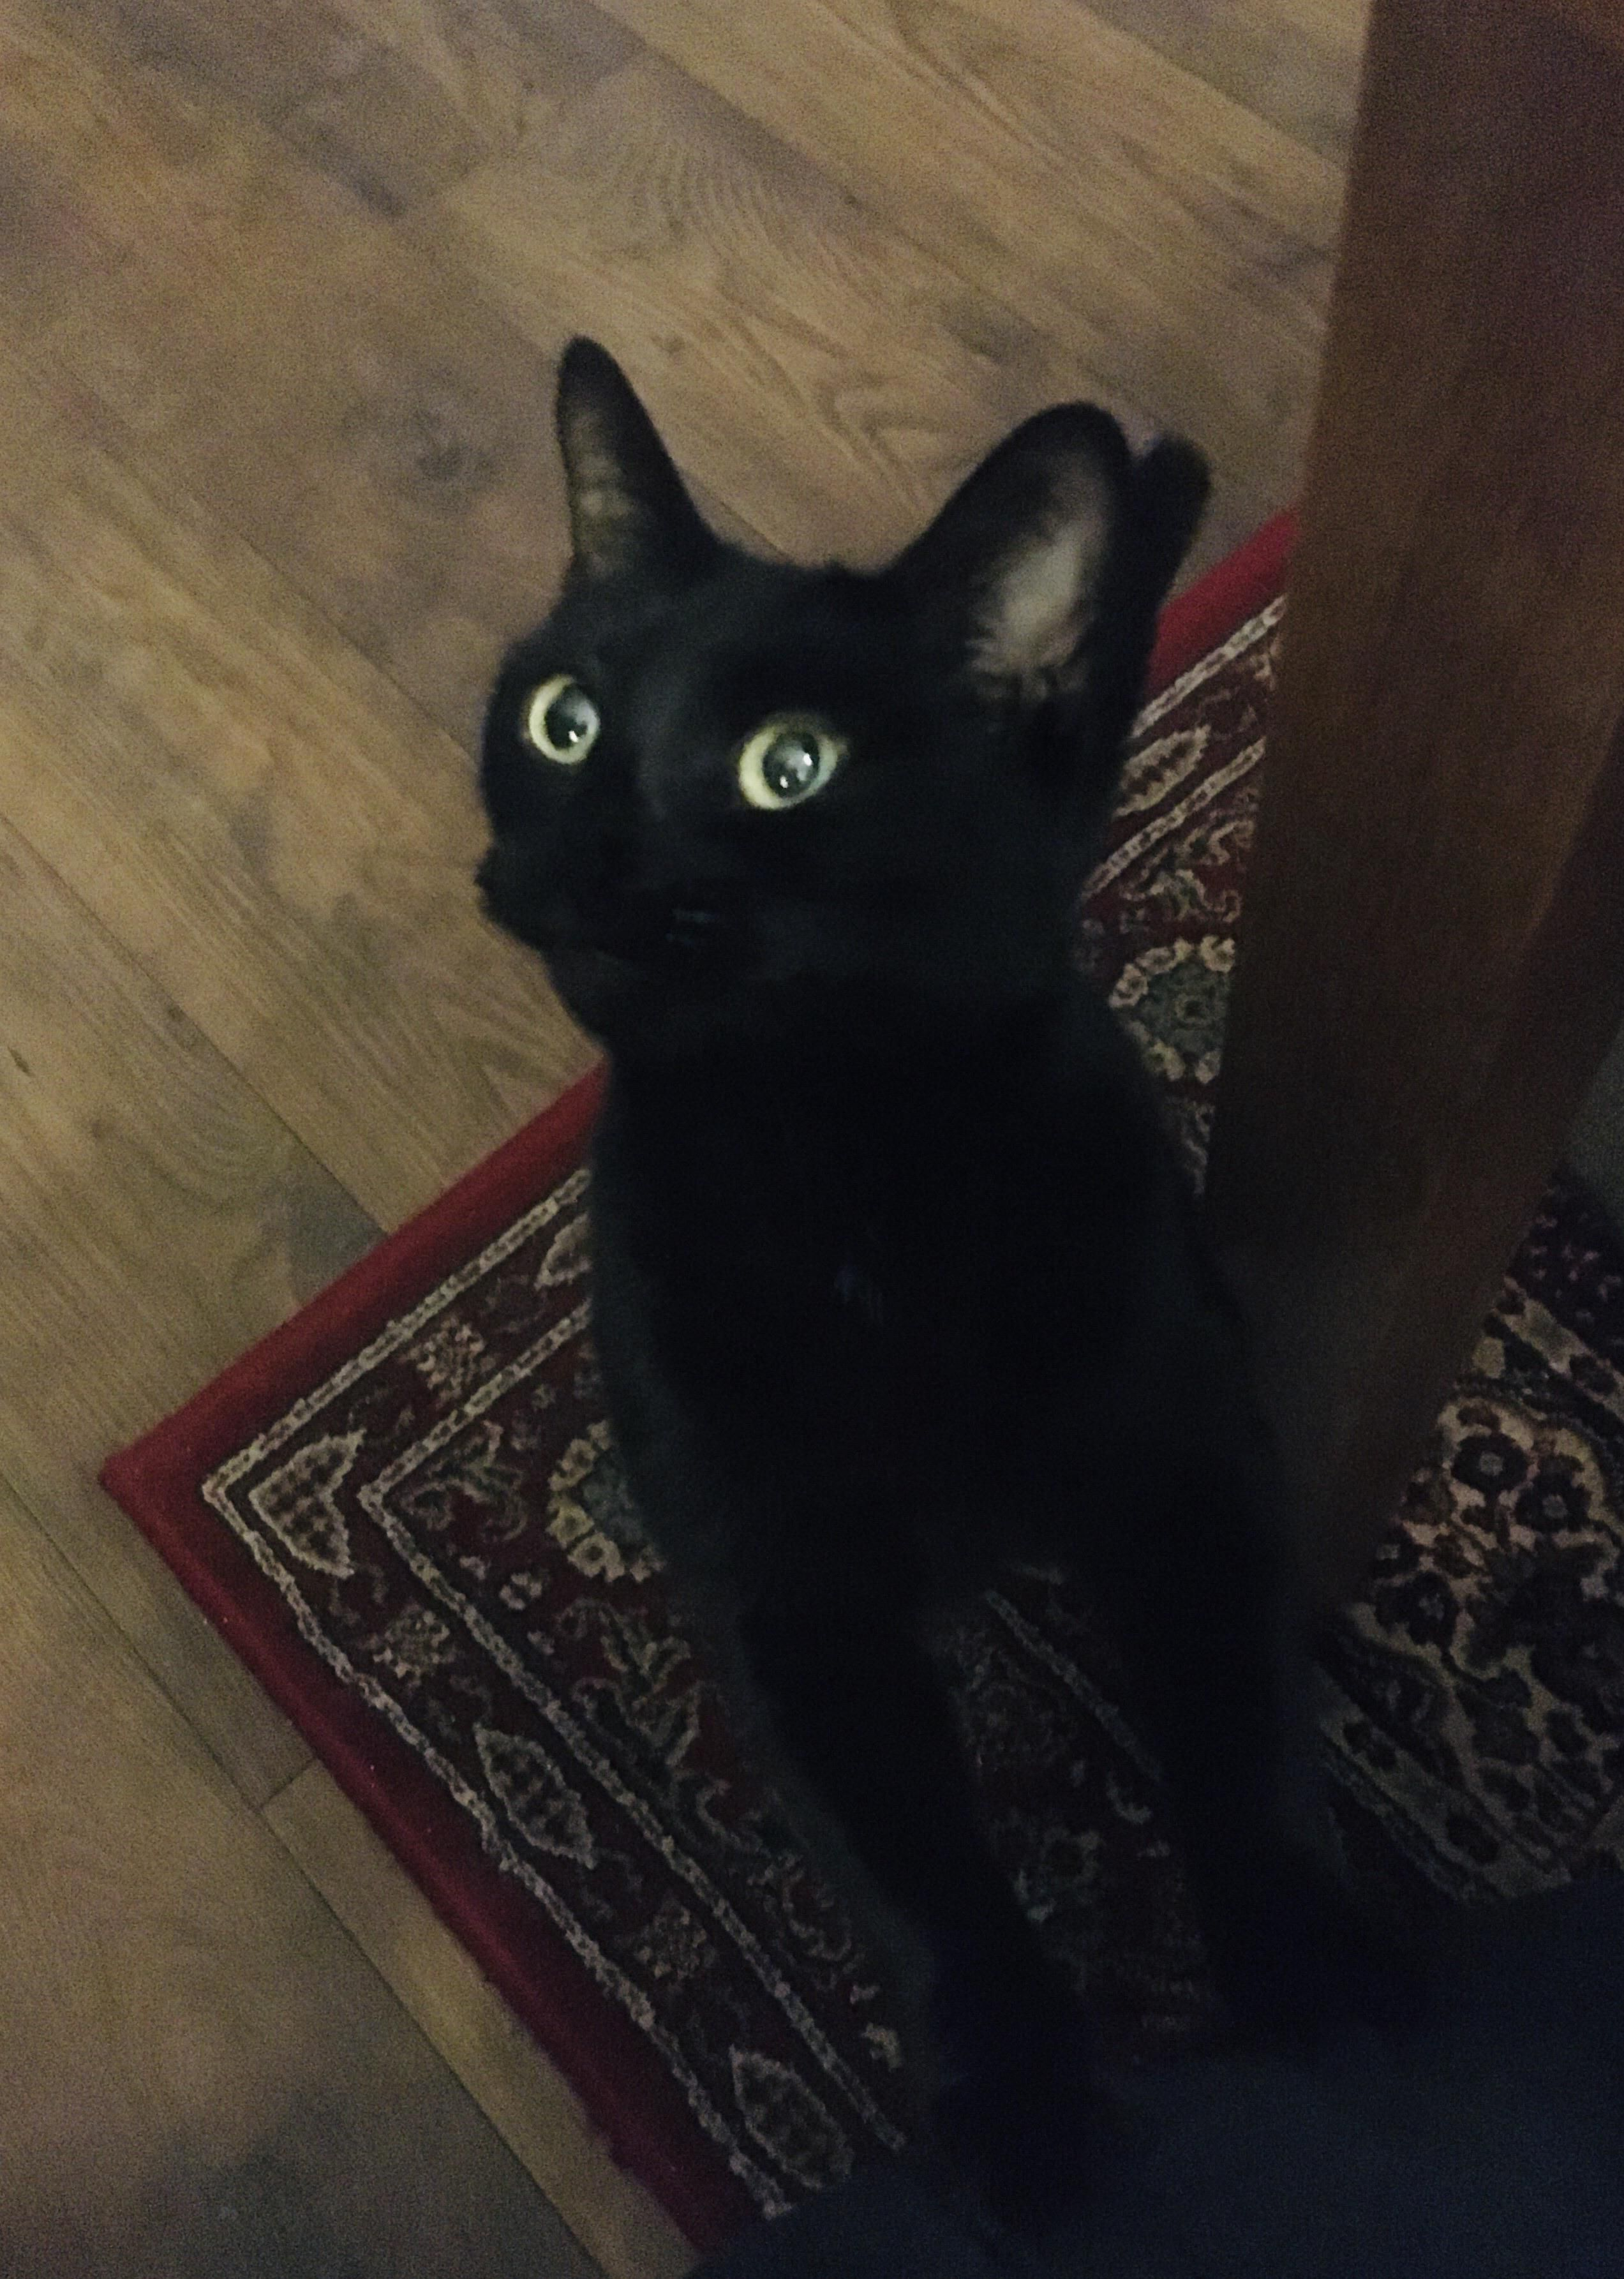 Those Eyes In 2020 Cute Cats And Kittens Black Cats Rock Kittens Cutest